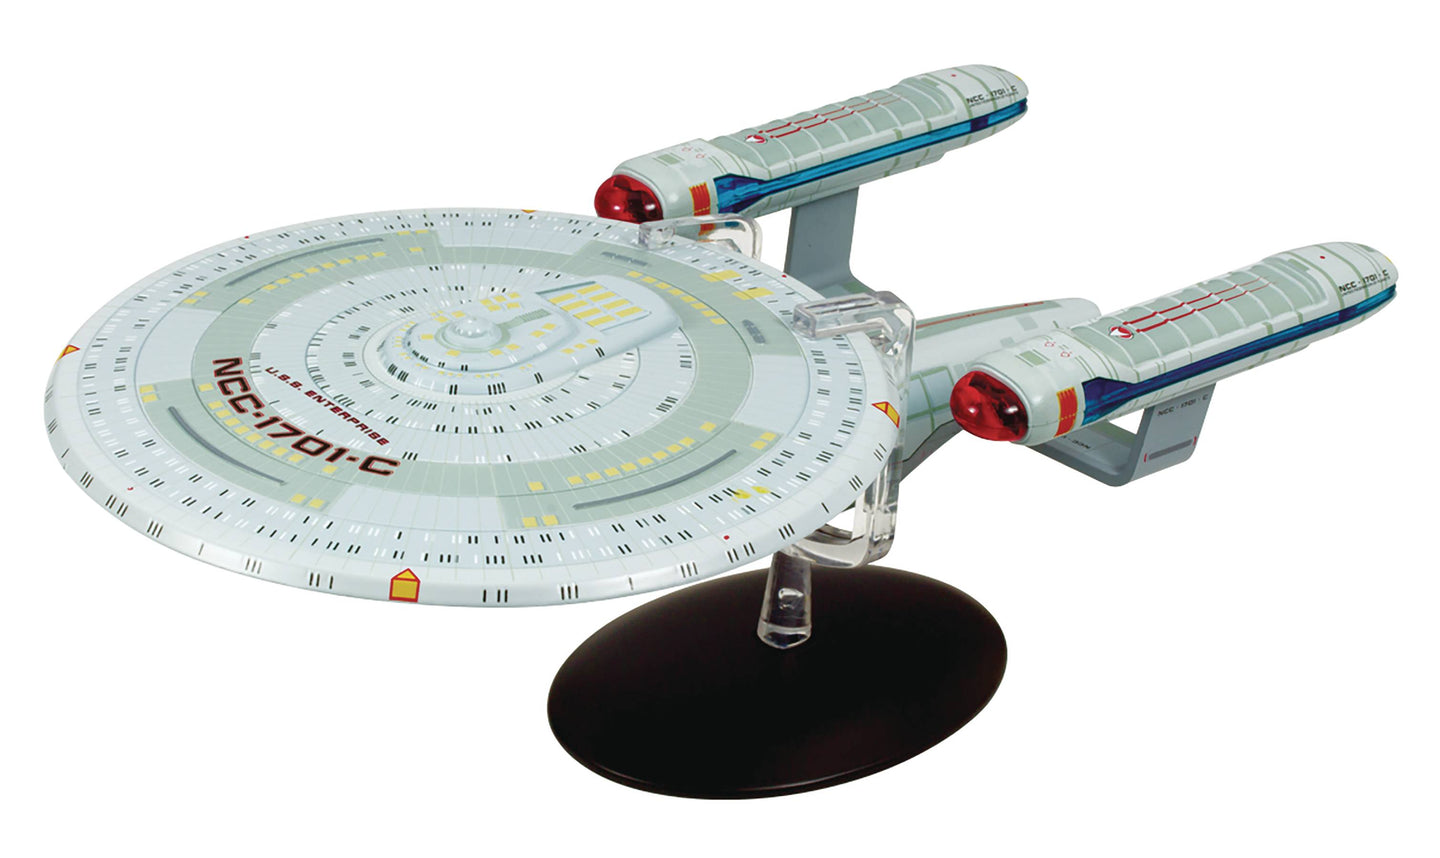 Star Trek Starships Special #27 U.S.S. Enterprise NCC-1701-C